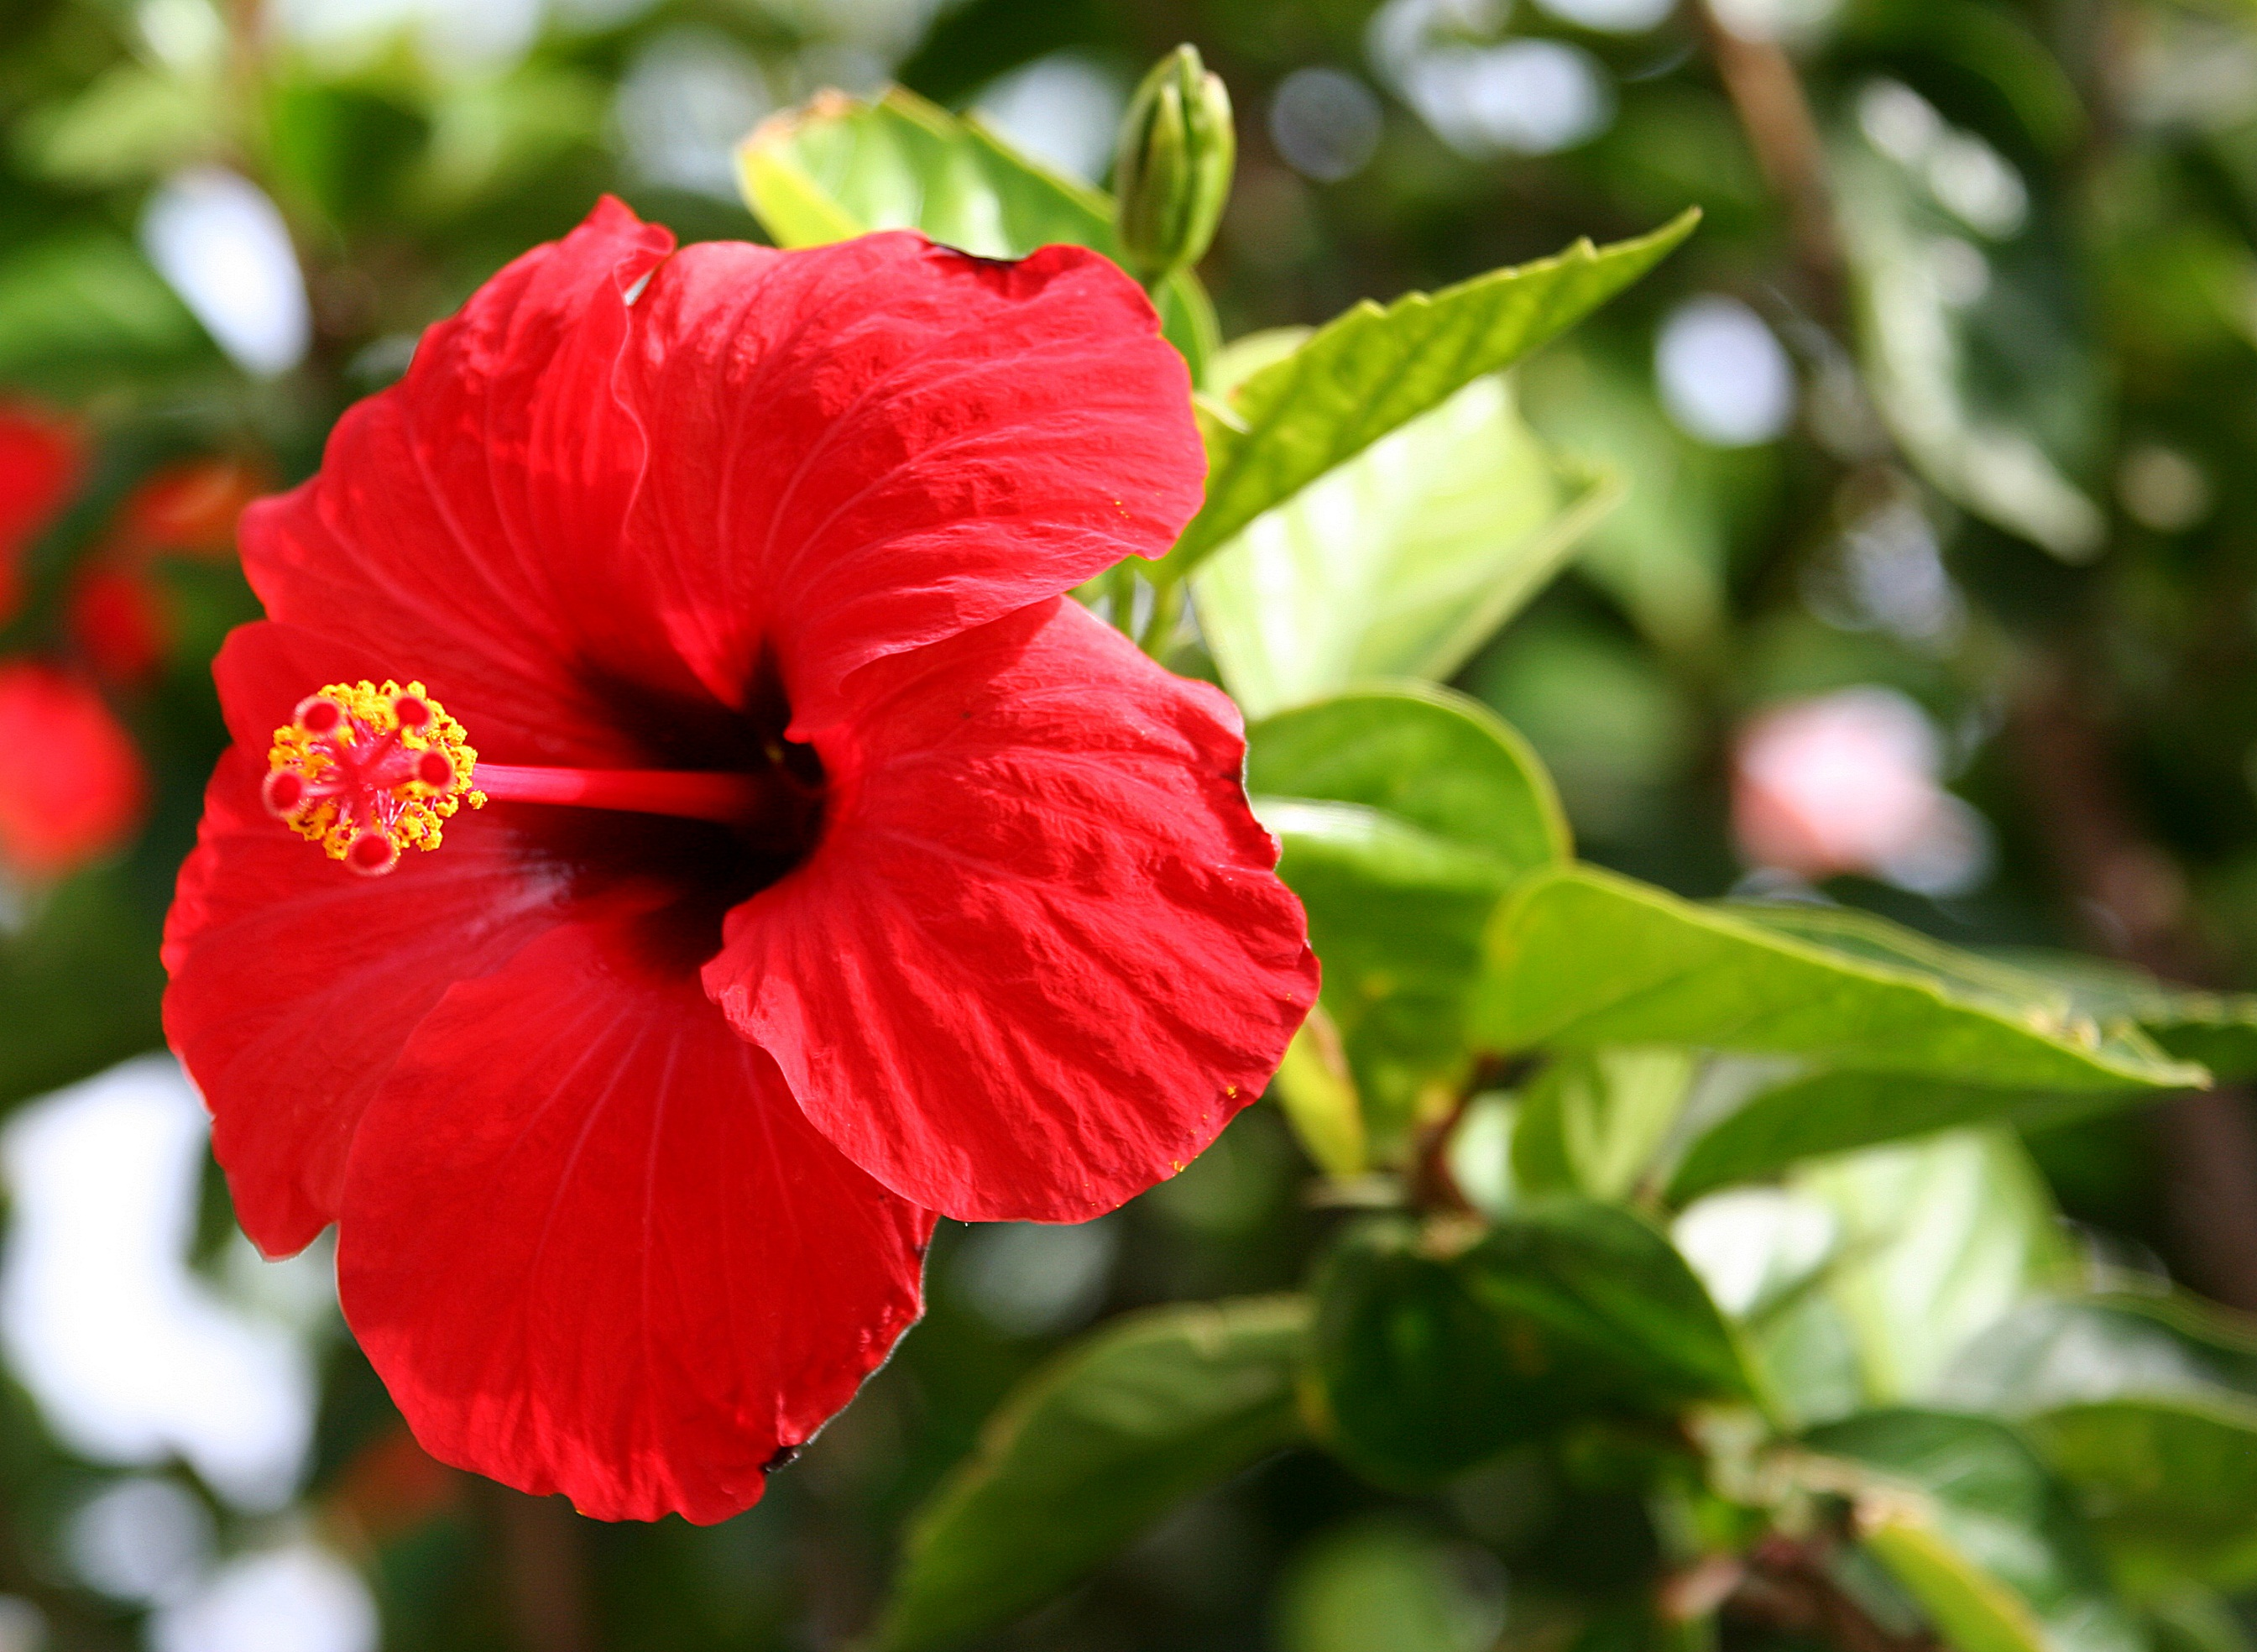 Flower Names in Hindi and English                                                                List of Flowers Hibiscus                                         Gudhal  Hibiscus rosa sinensis